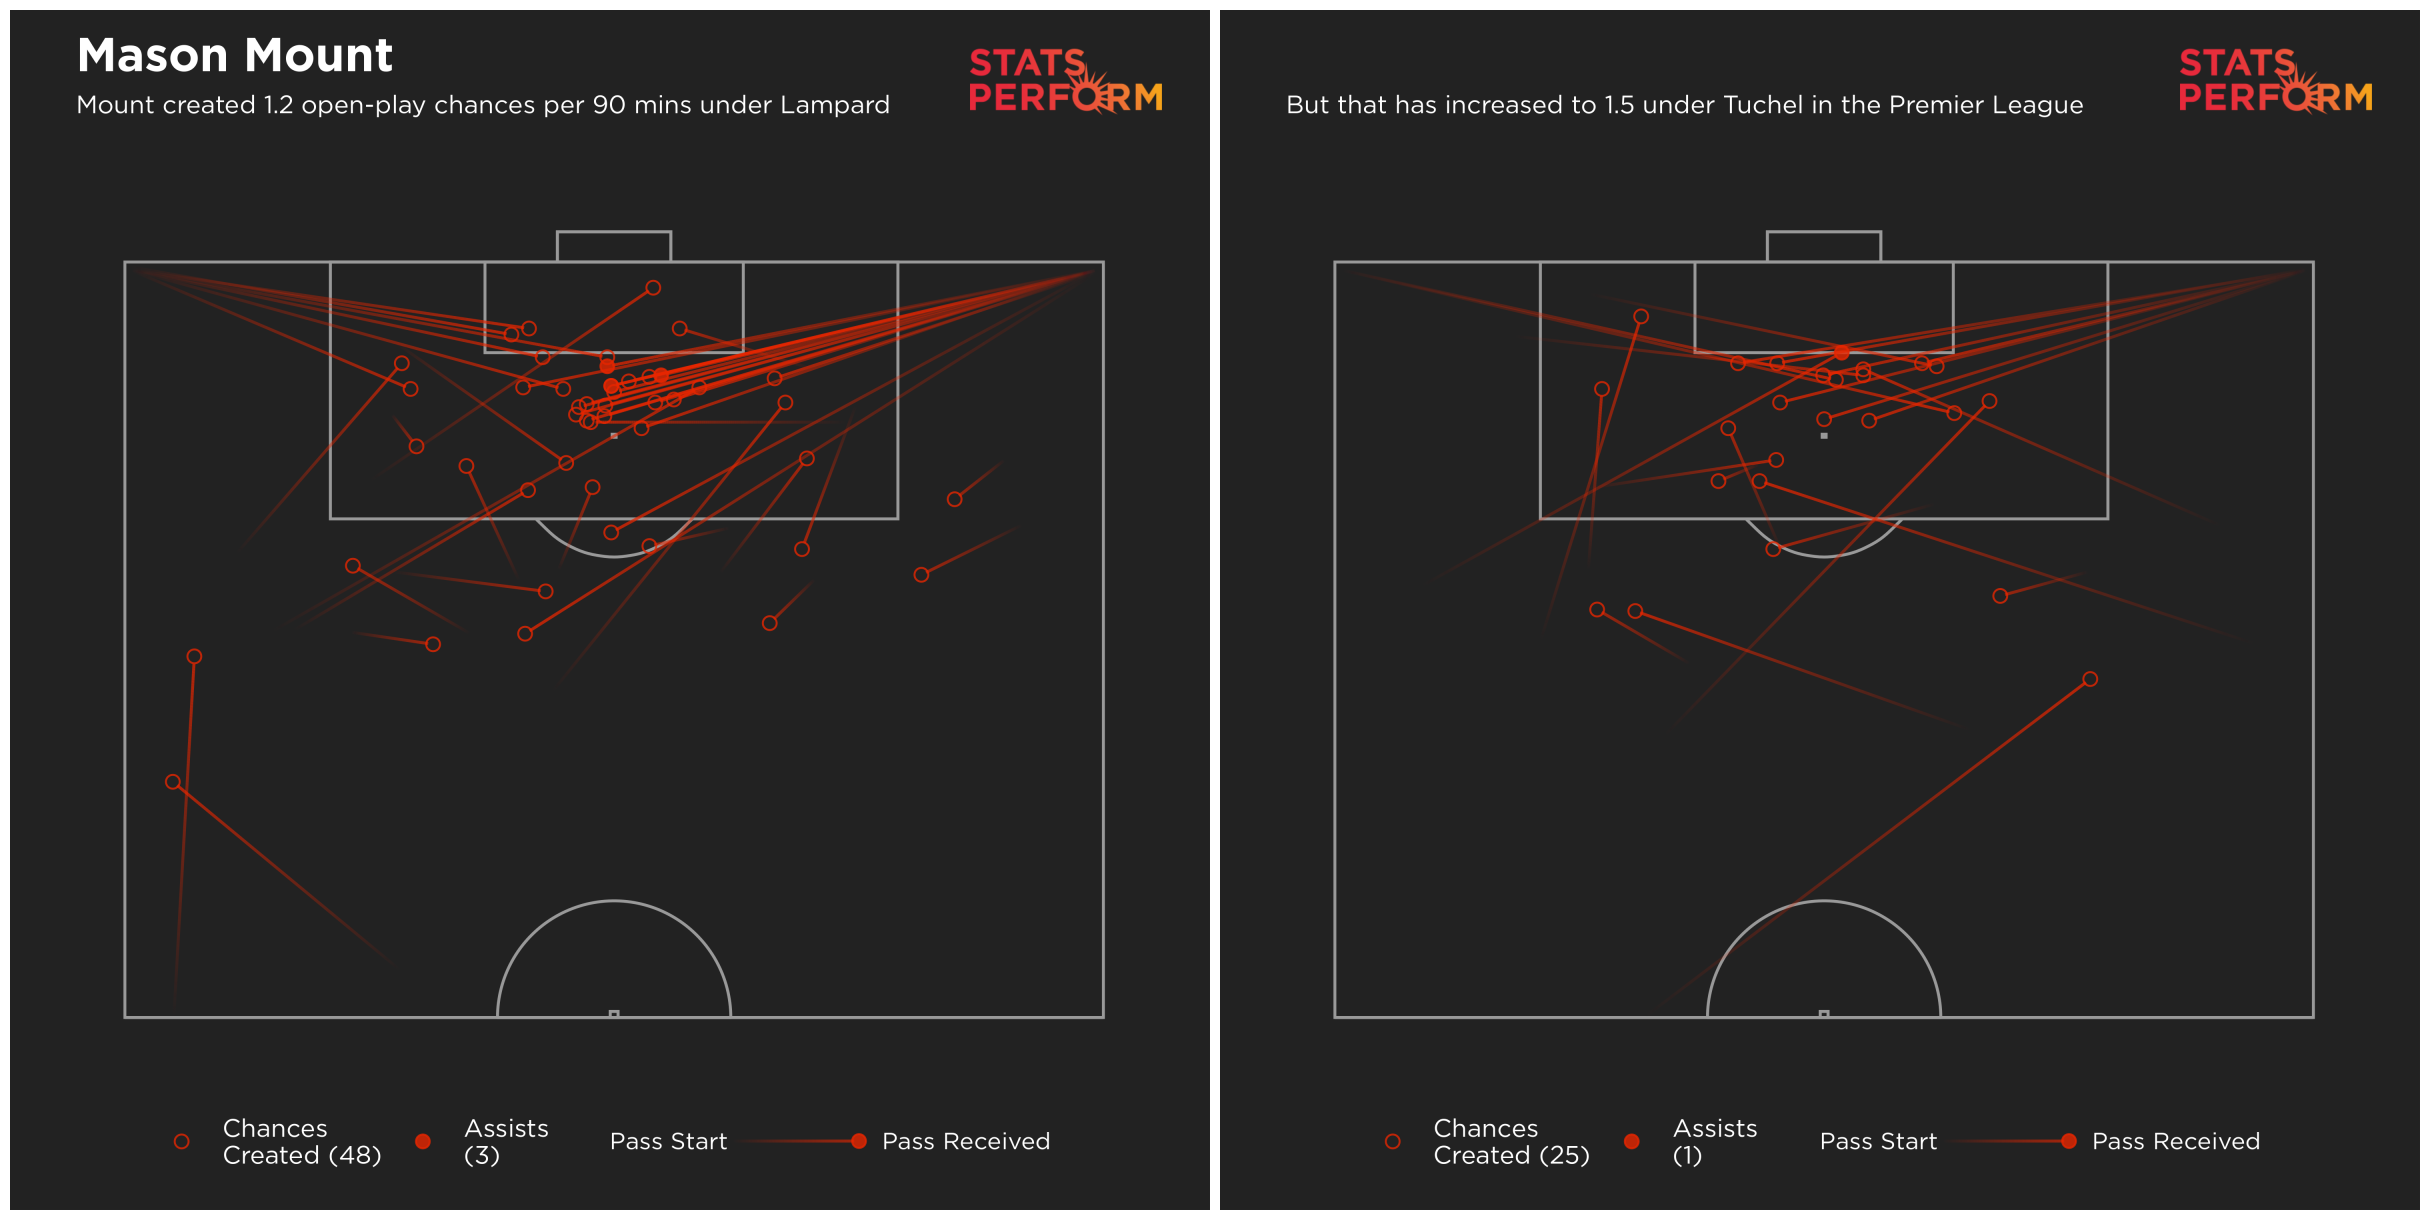 Mount's open-play key passes have increased since Tuchel came in